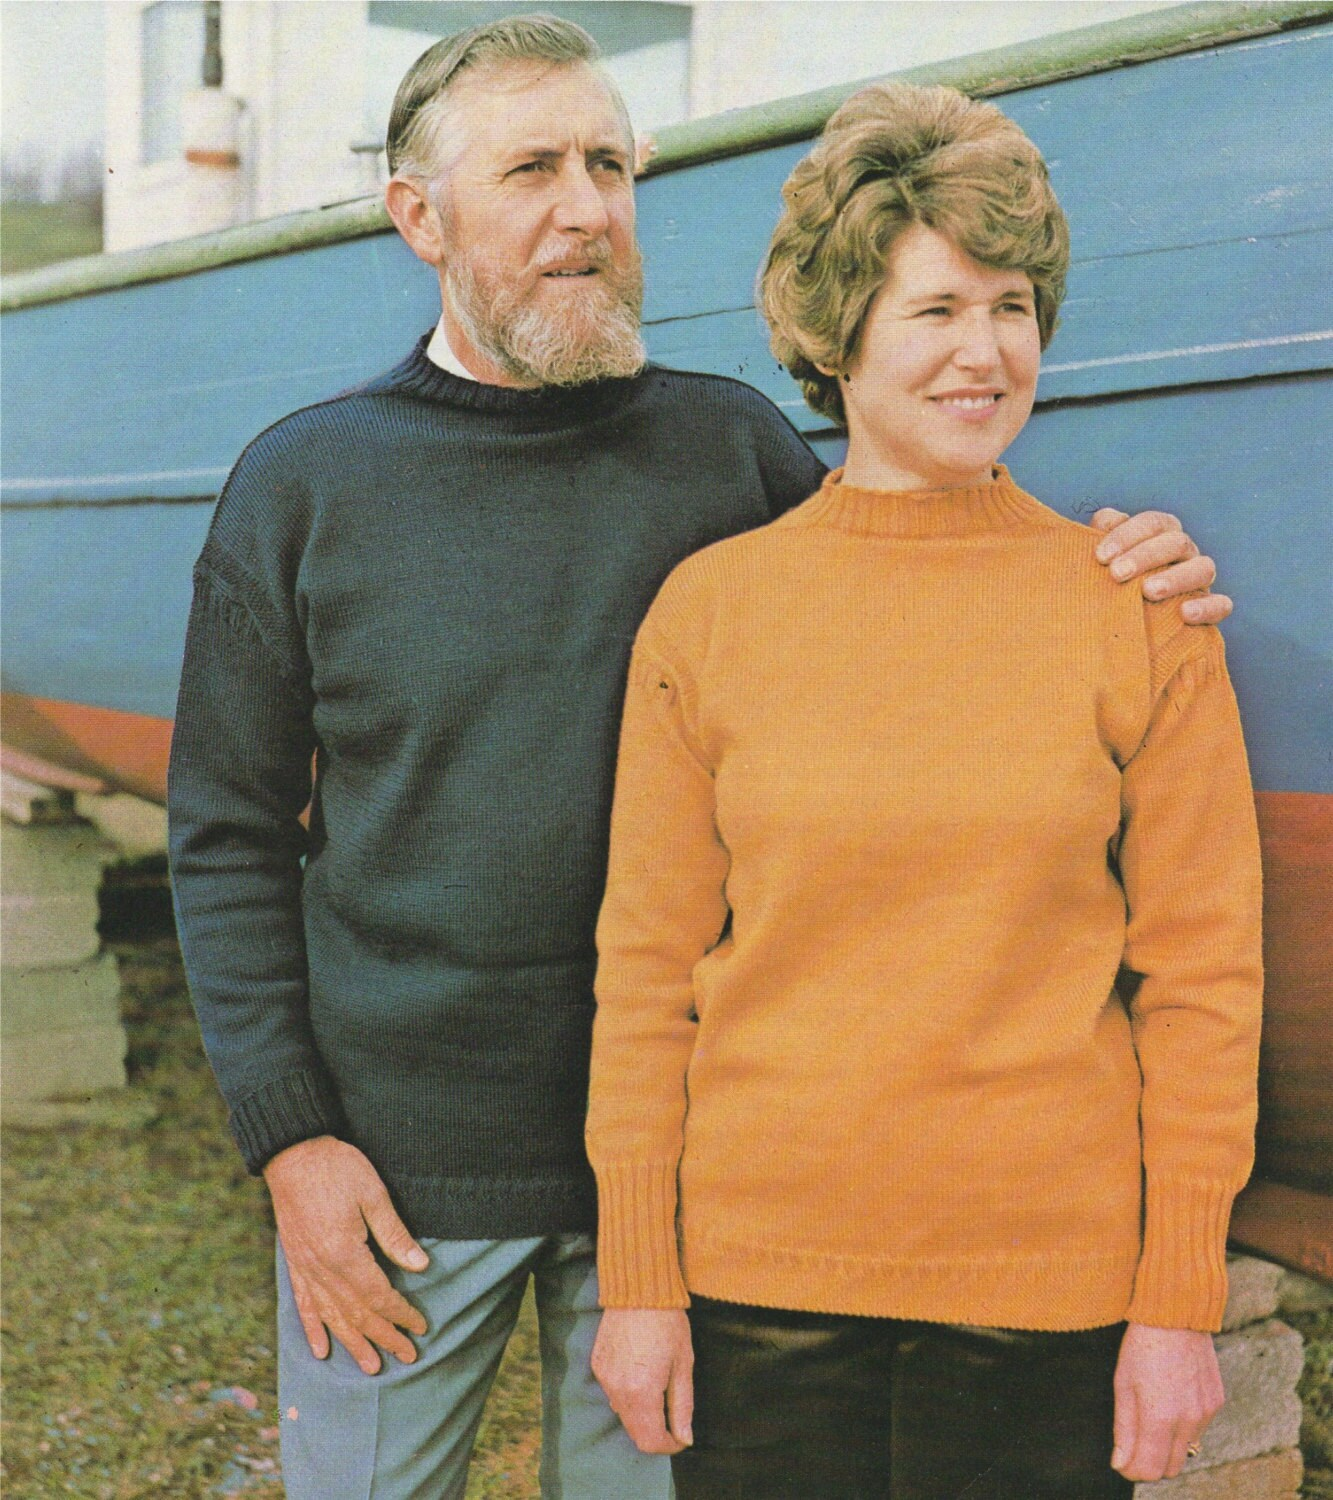 Womens Mens Boys and Girls Guernsey Sweater PDF Knitting